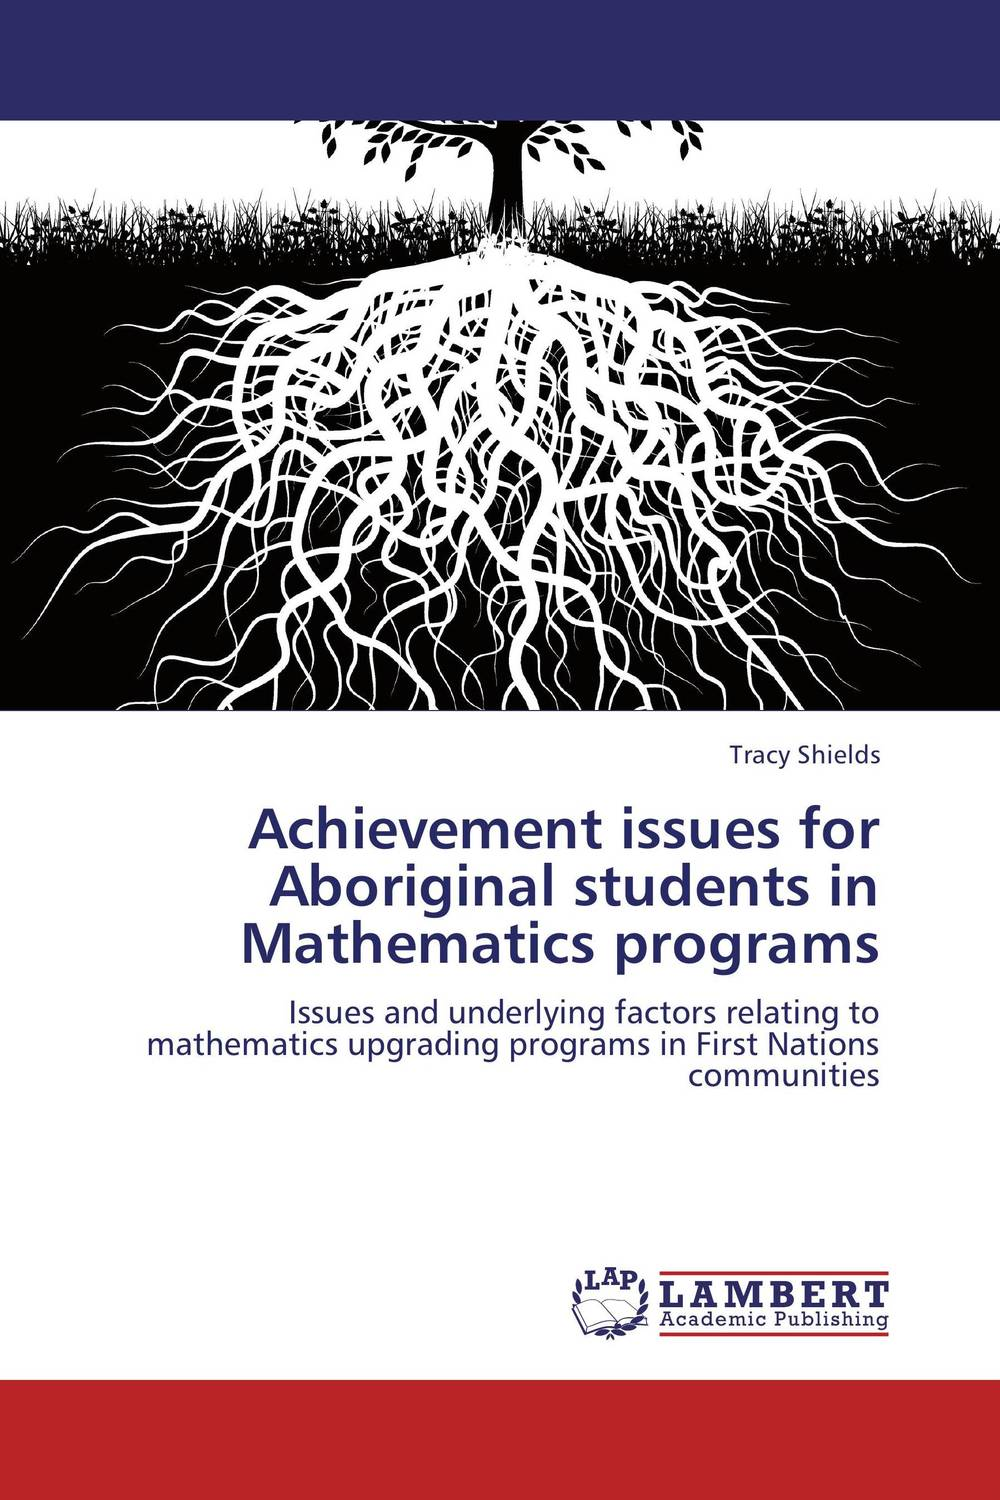 Achievement issues for Aboriginal students in Mathematics programs